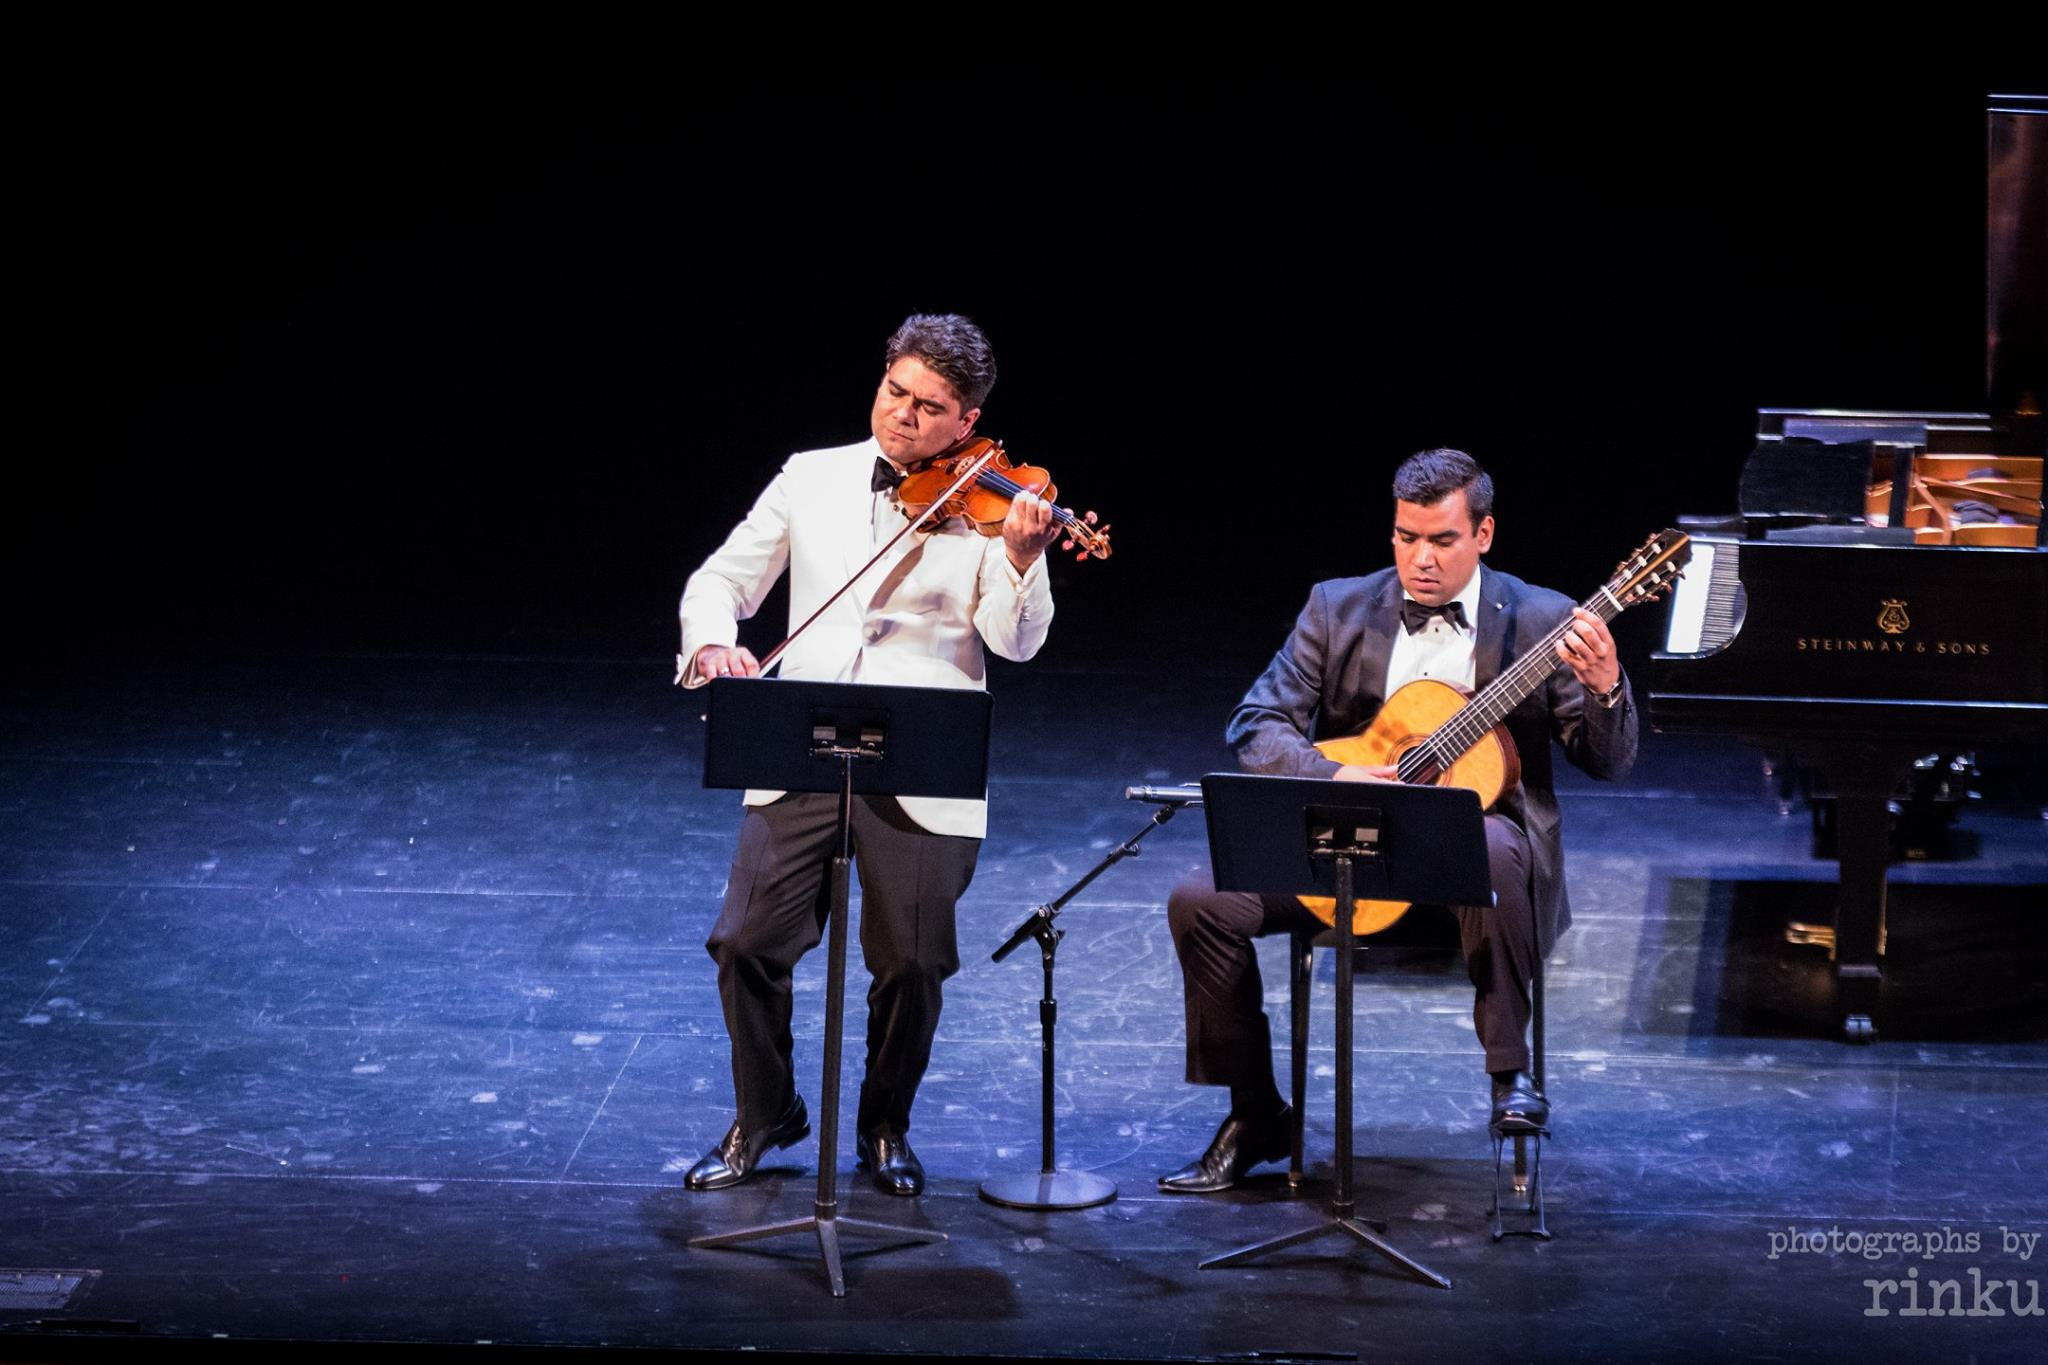 Vivaldi Music Academy debuts at The Kennedy Center in Washington D.C.